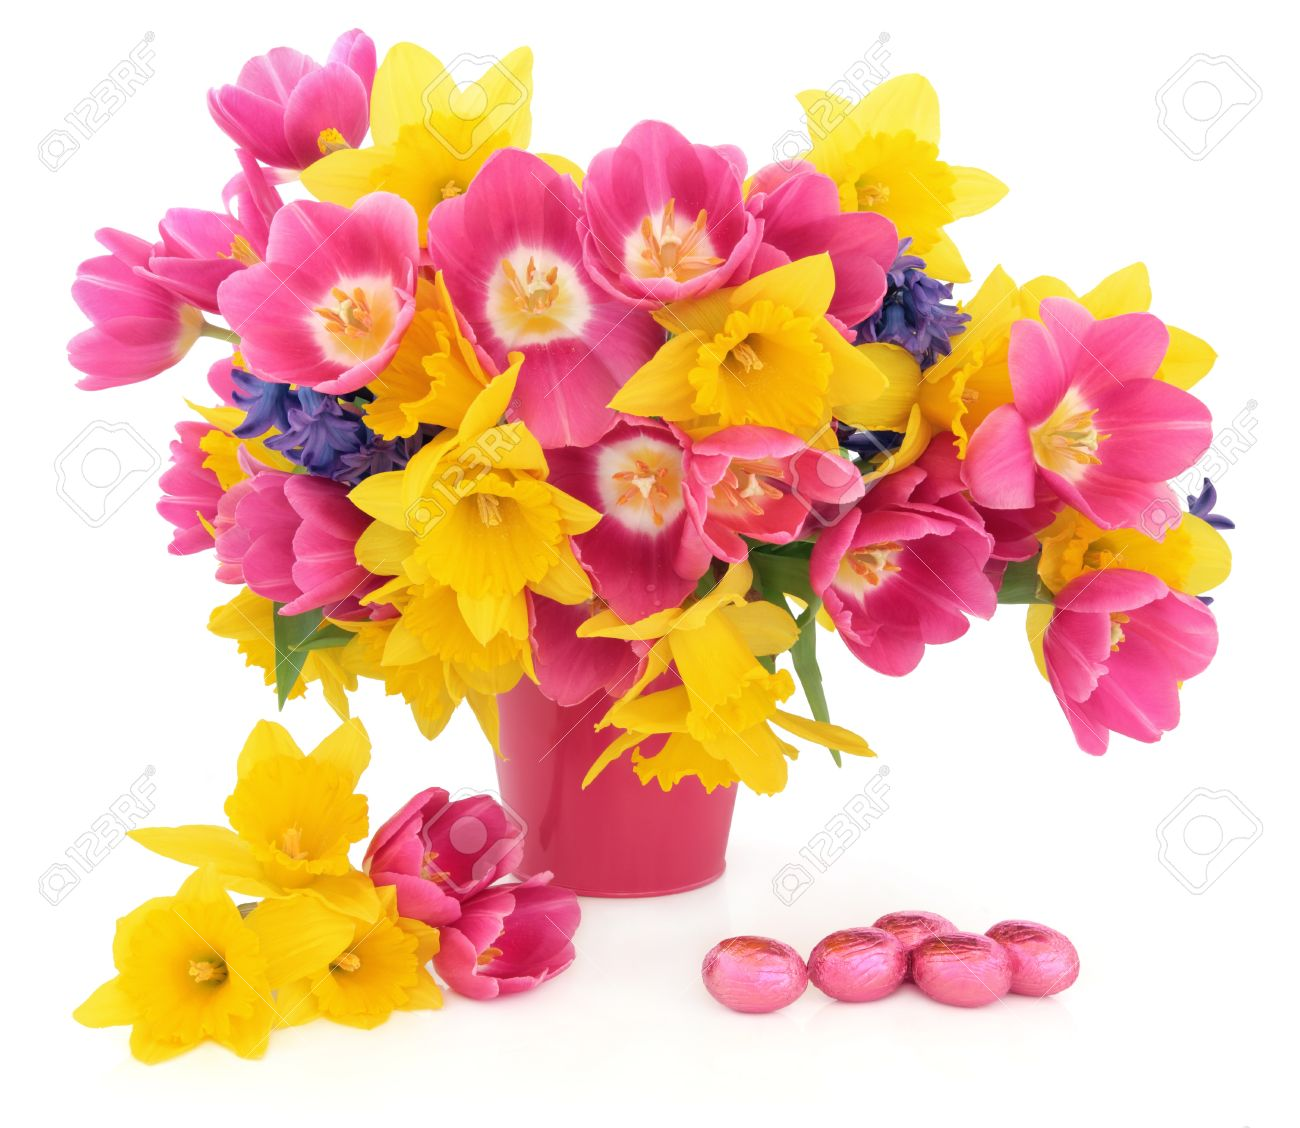 Tulip Daffodil And Hyacinth Flower Arrangement In A Pink Vase